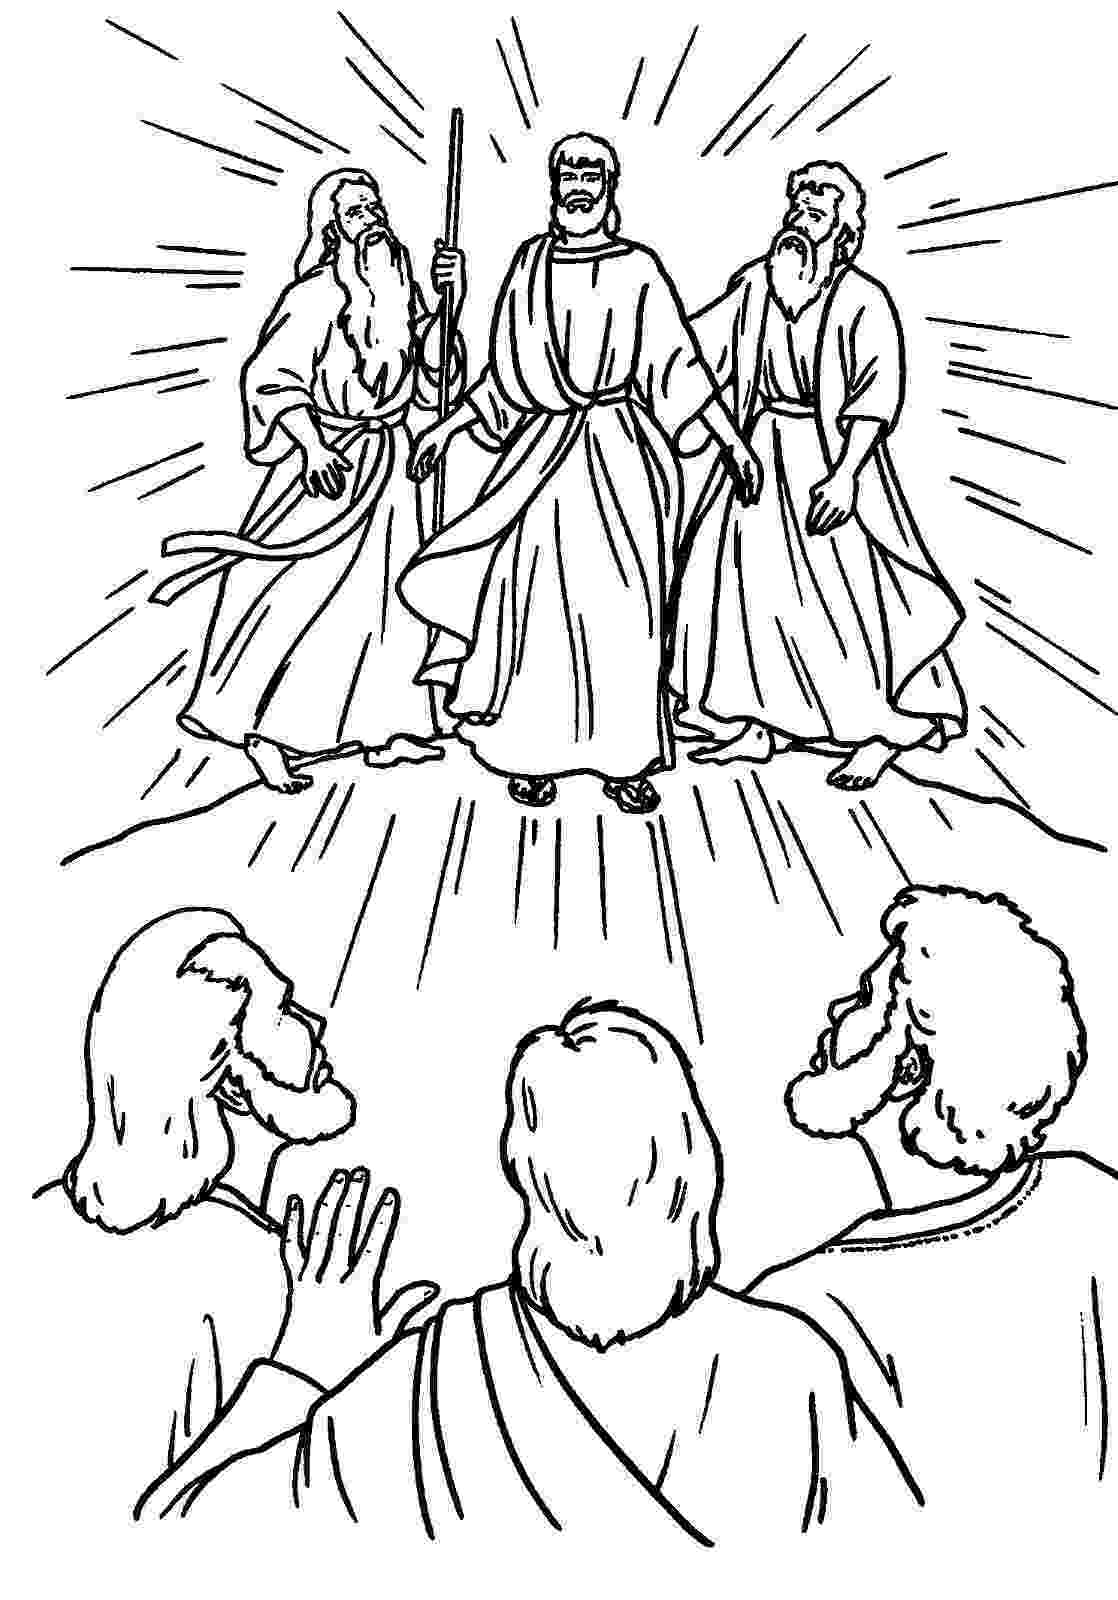 the transfiguration of jesus coloring page the transfiguration catholic coloring page sunday school coloring page jesus of transfiguration the